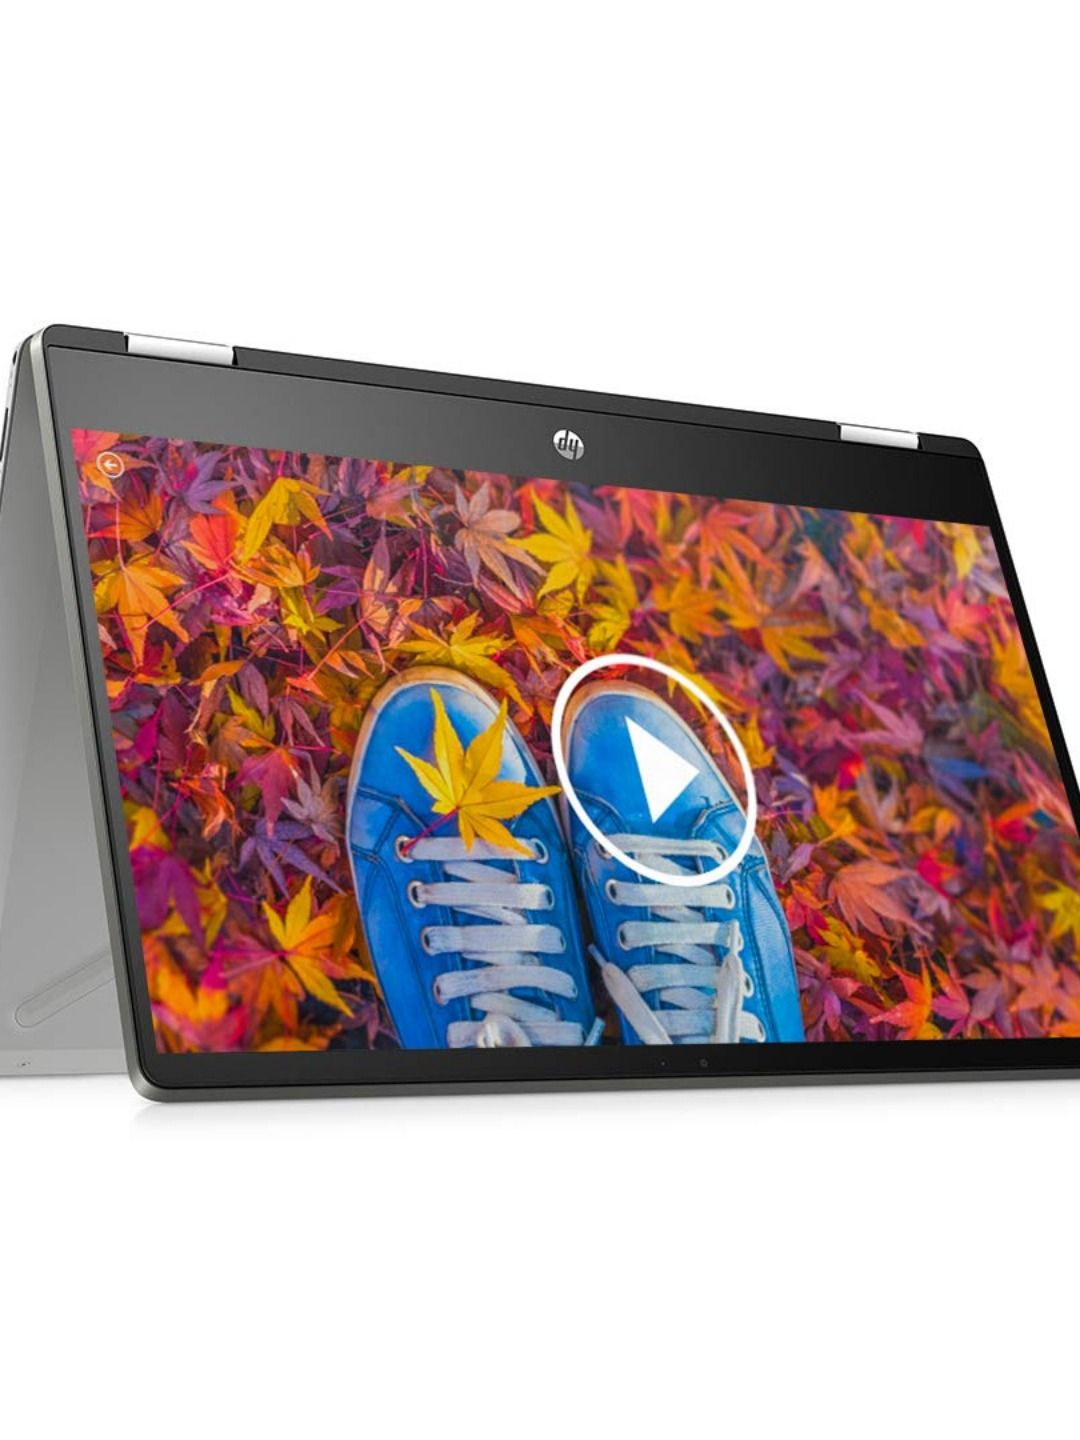 Hp Pavilion X360 Touchscreen 2 In 1 Fhd 14 Inch Laptop 14 Inch Laptop Hp Pavilion X360 Hp Pavilion Laptop Design